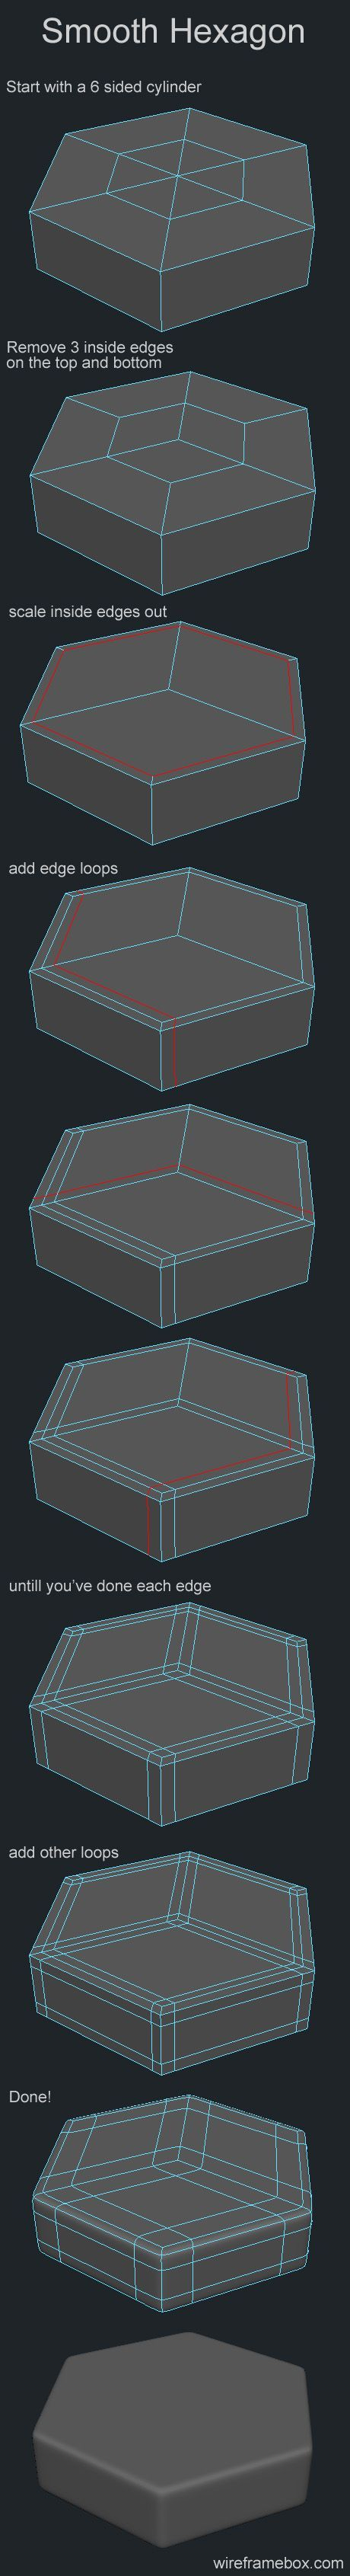 Smooth Hexagon Modeling メッシュ